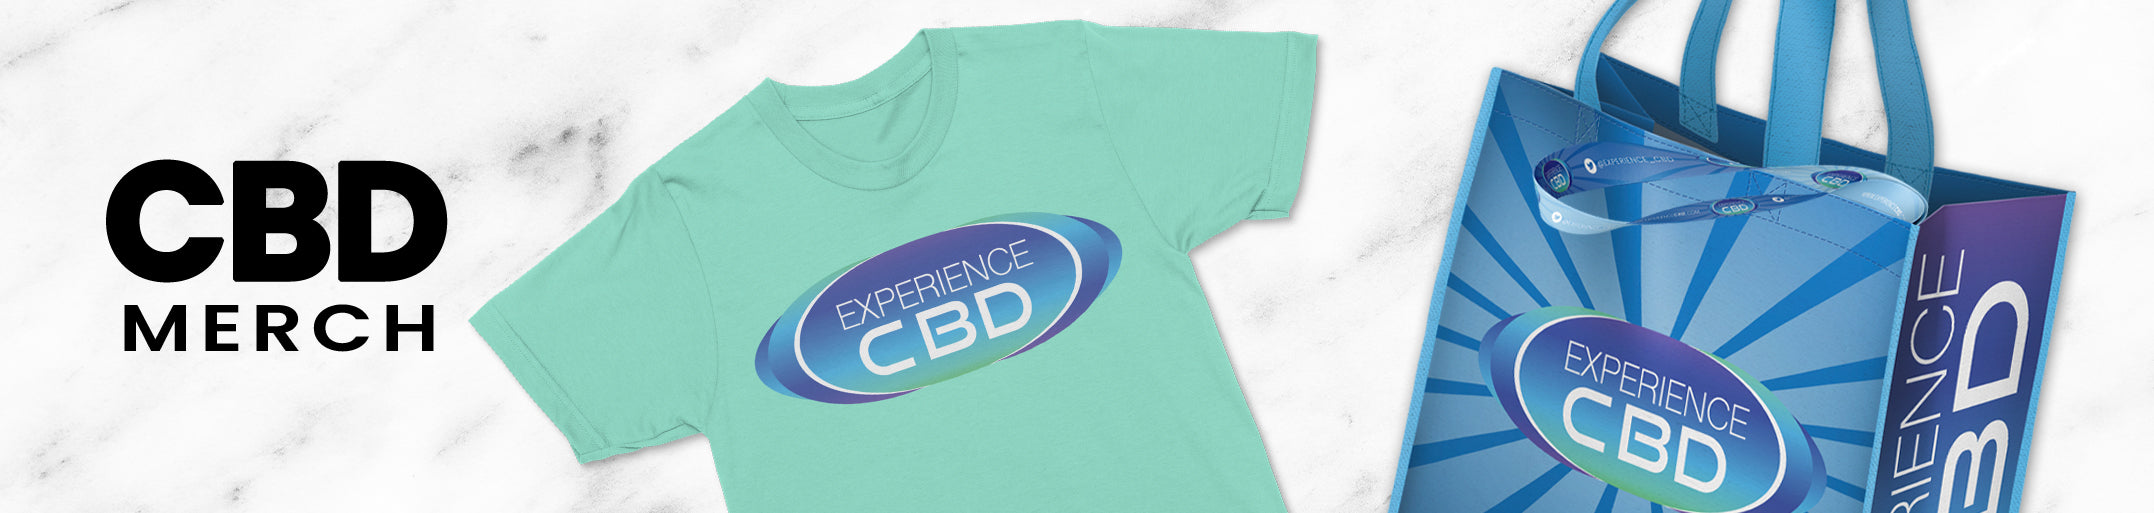 Experience CBD Merchandise | Tshirts, Tote bags, and lanyards